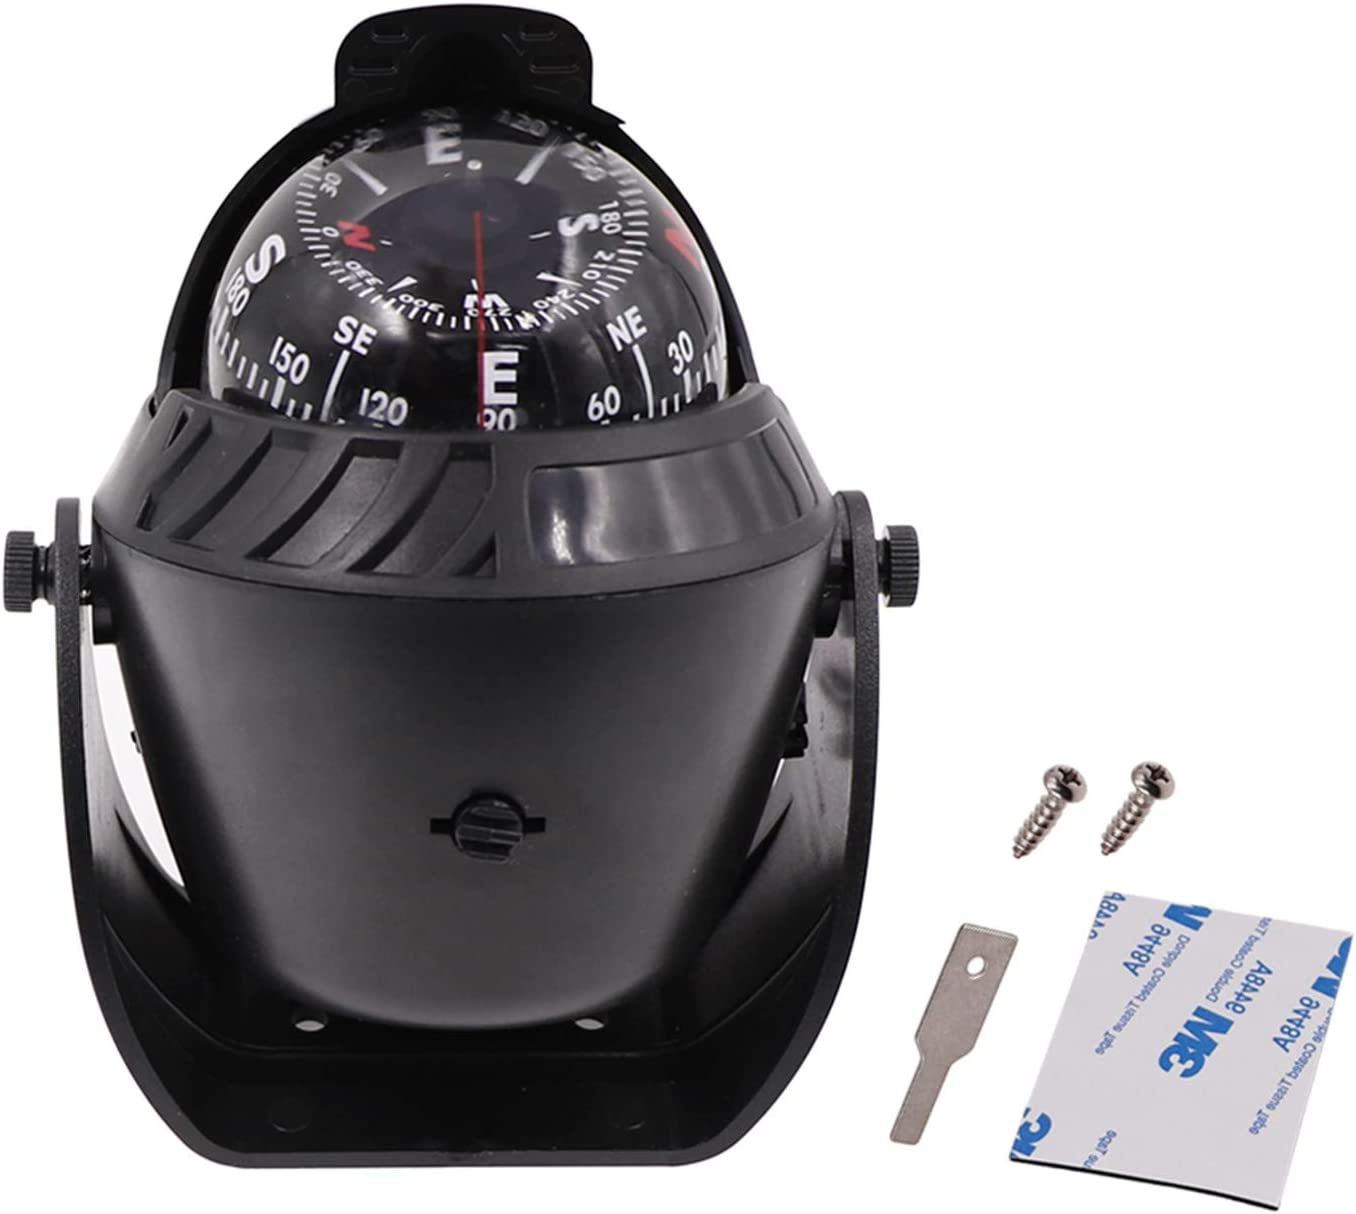 Geloo Boat Compass Dash Navigation Mount We OFFer at cheap prices Marine Minneapolis Mall Dashboar